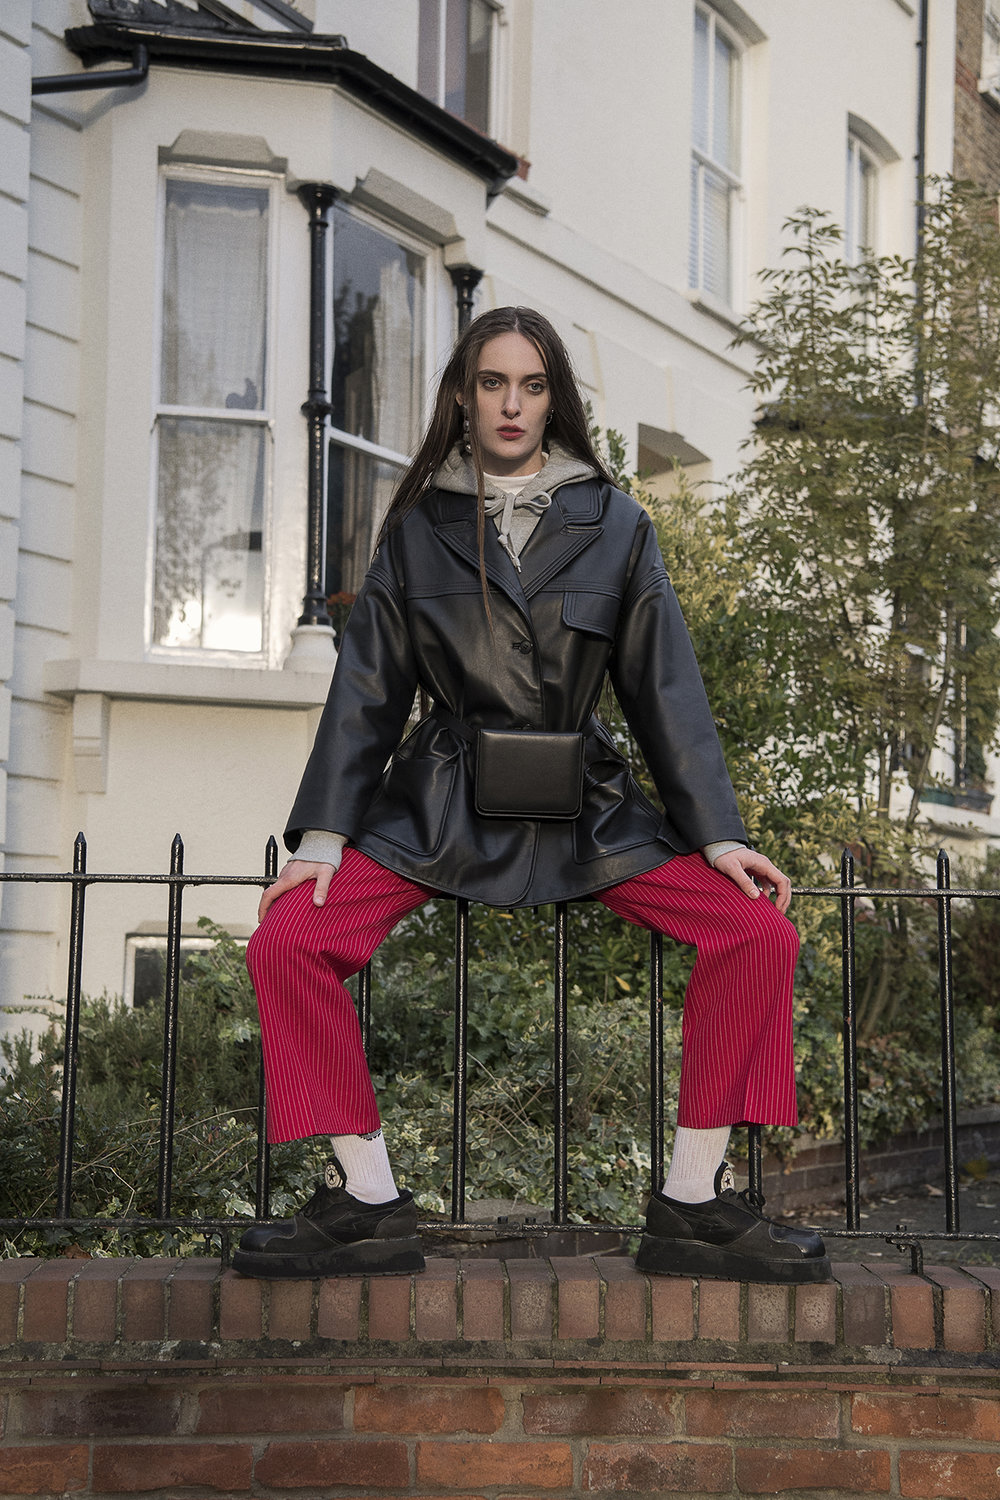 leather jacket  are you  hoodie  champion  red trousers + shoes  the market cartel  bum bag  persephoni  earrings  vintage  bracelet  toga